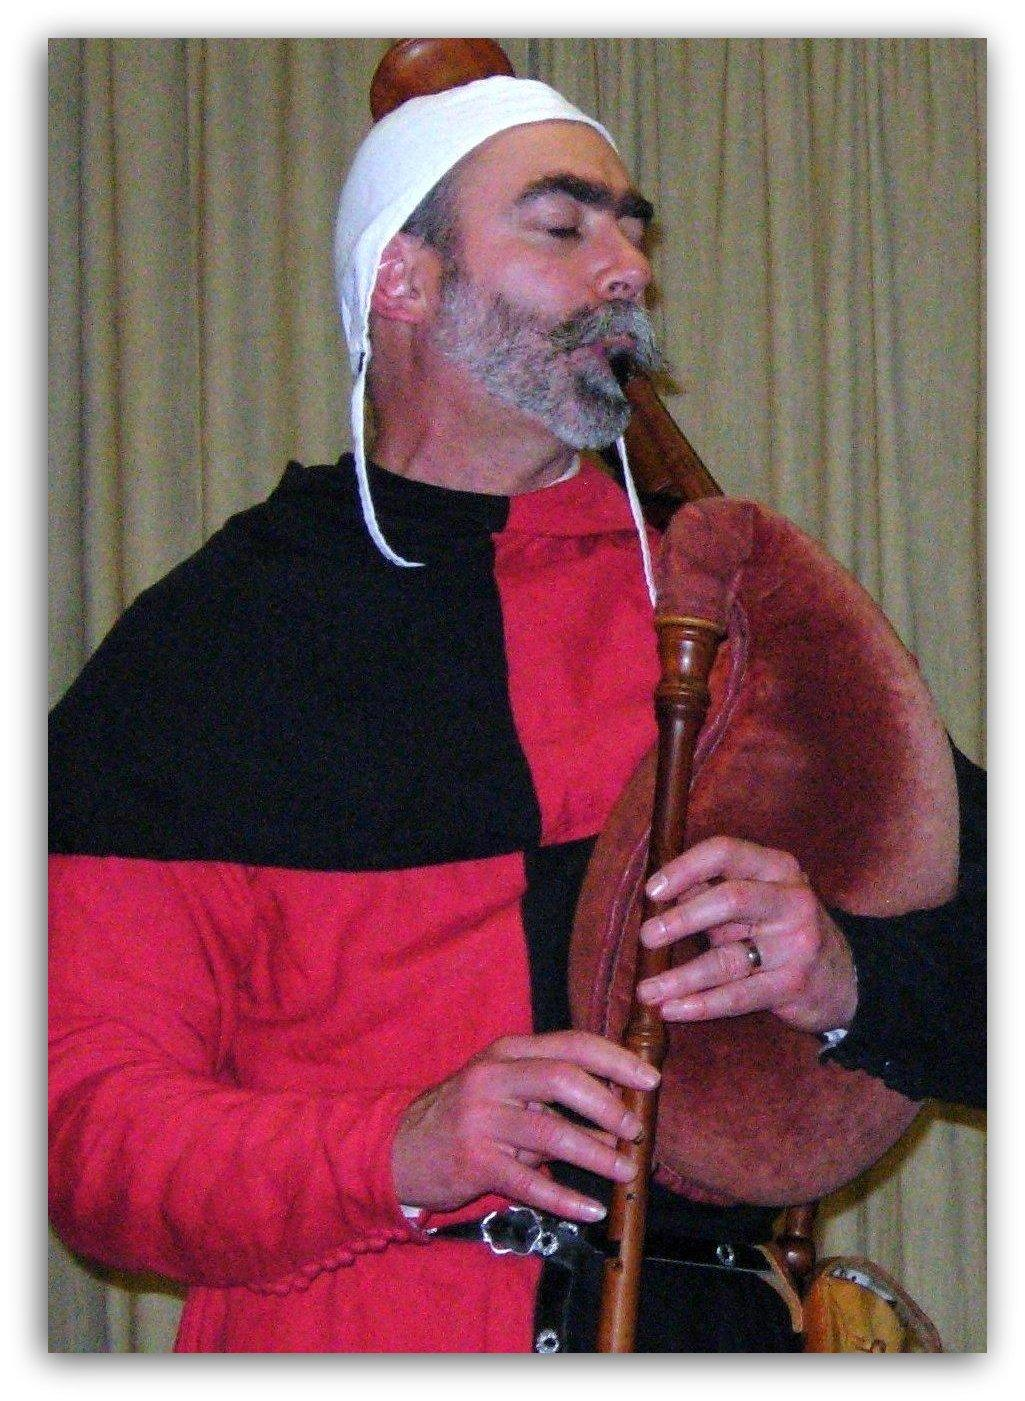 medieval musician entertains guests at banquet